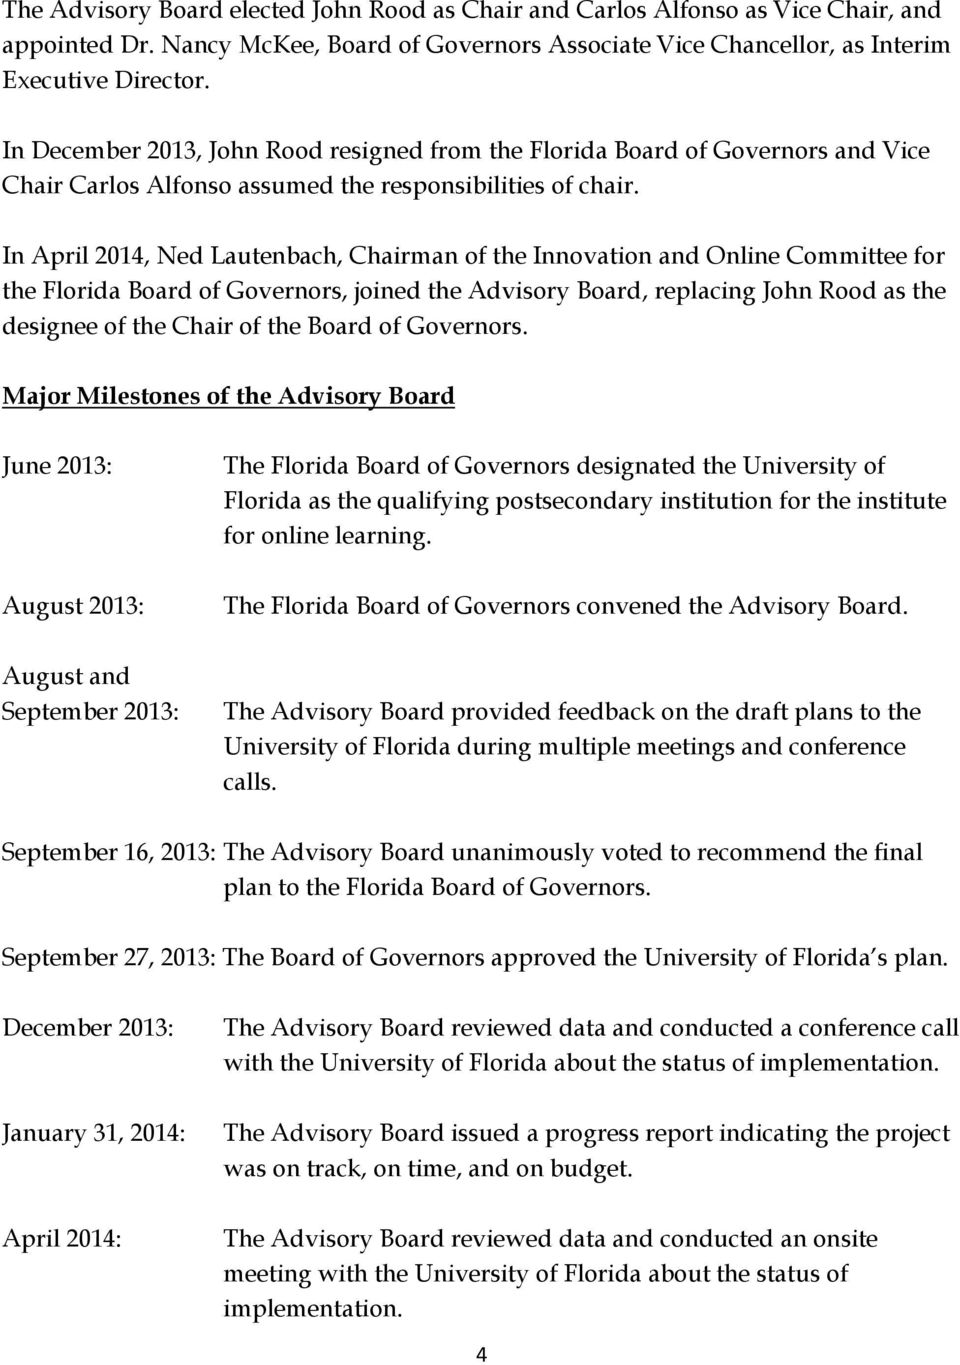 In April 2014, Ned Lautenbach, Chairman of the Innovation and Online Committee for the Florida Board of Governors, joined the Advisory Board, replacing John Rood as the designee of the Chair of the